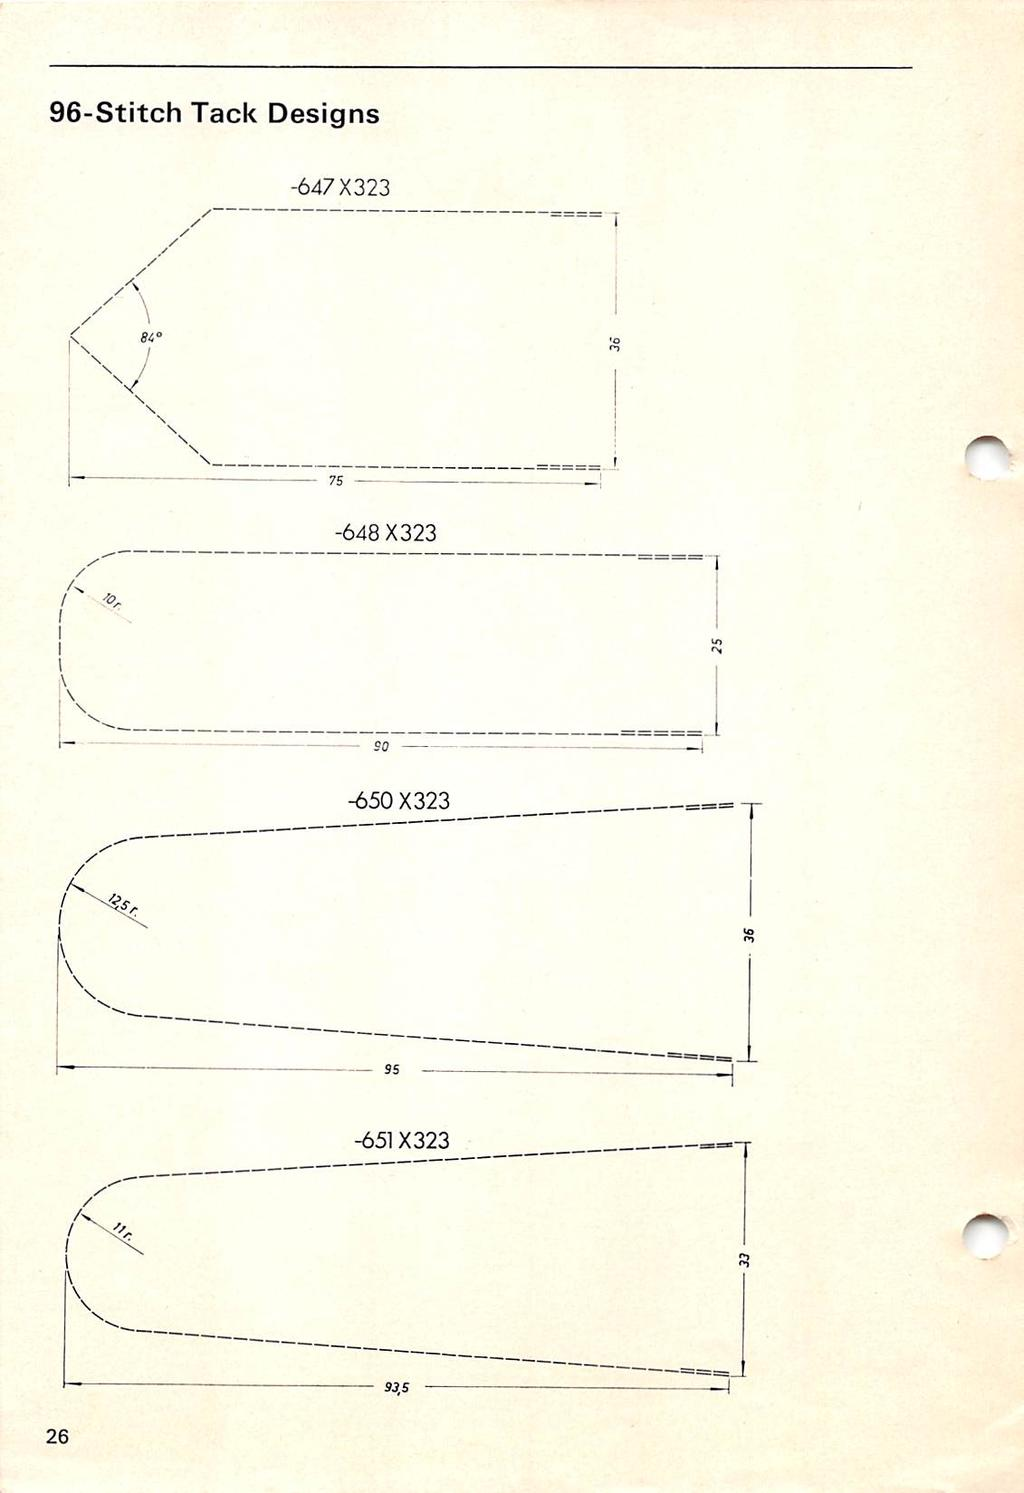 Rom The Library Of Superior Sewing Machine Supply Llc Pdf Singer 648 Threading Diagram 96 Stitch Tack Designs 647x323 X323